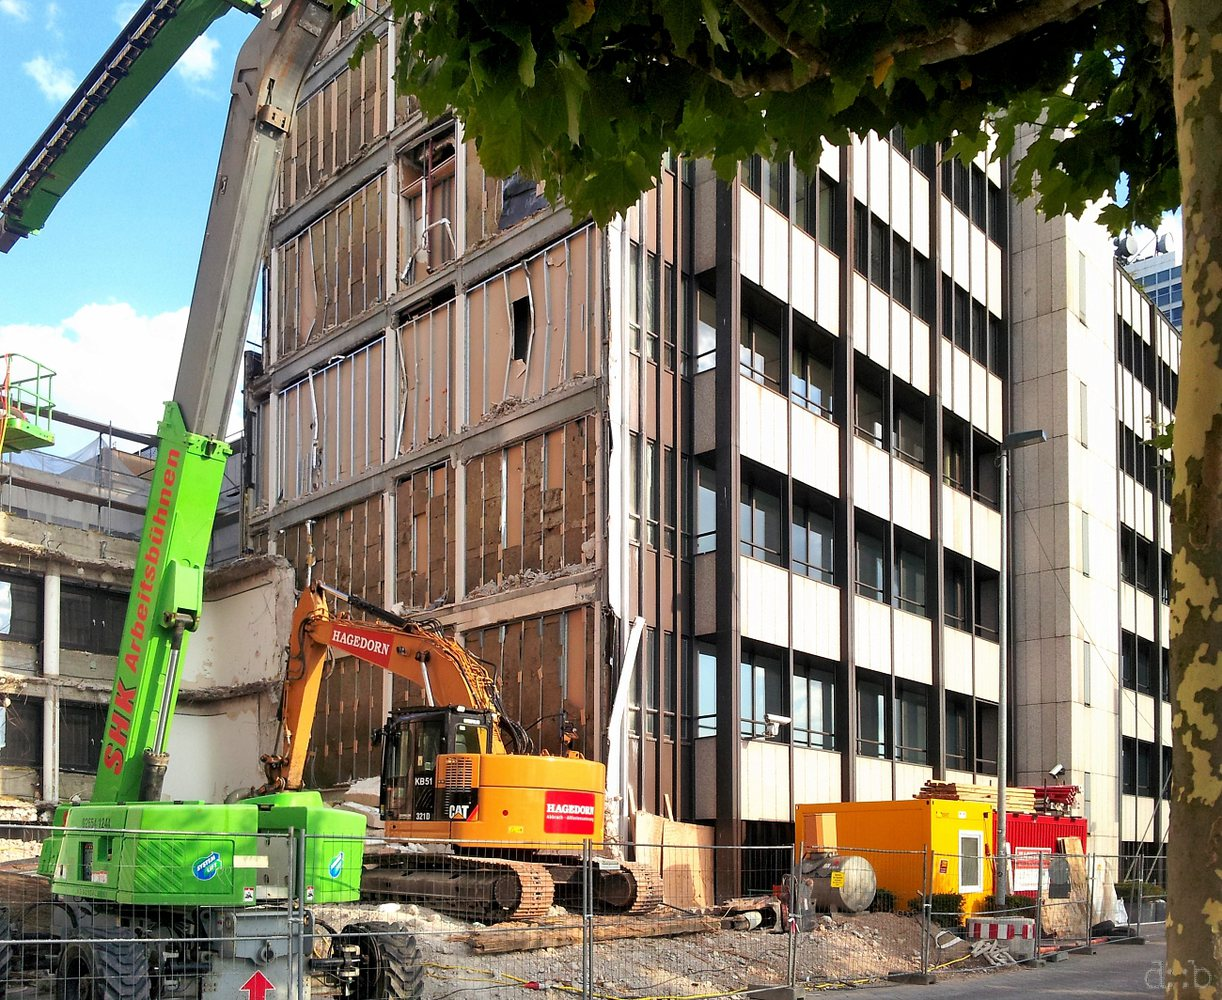 A literally framed building at Düsseldorf's Mannesmannufer has been removed with surgical precision.